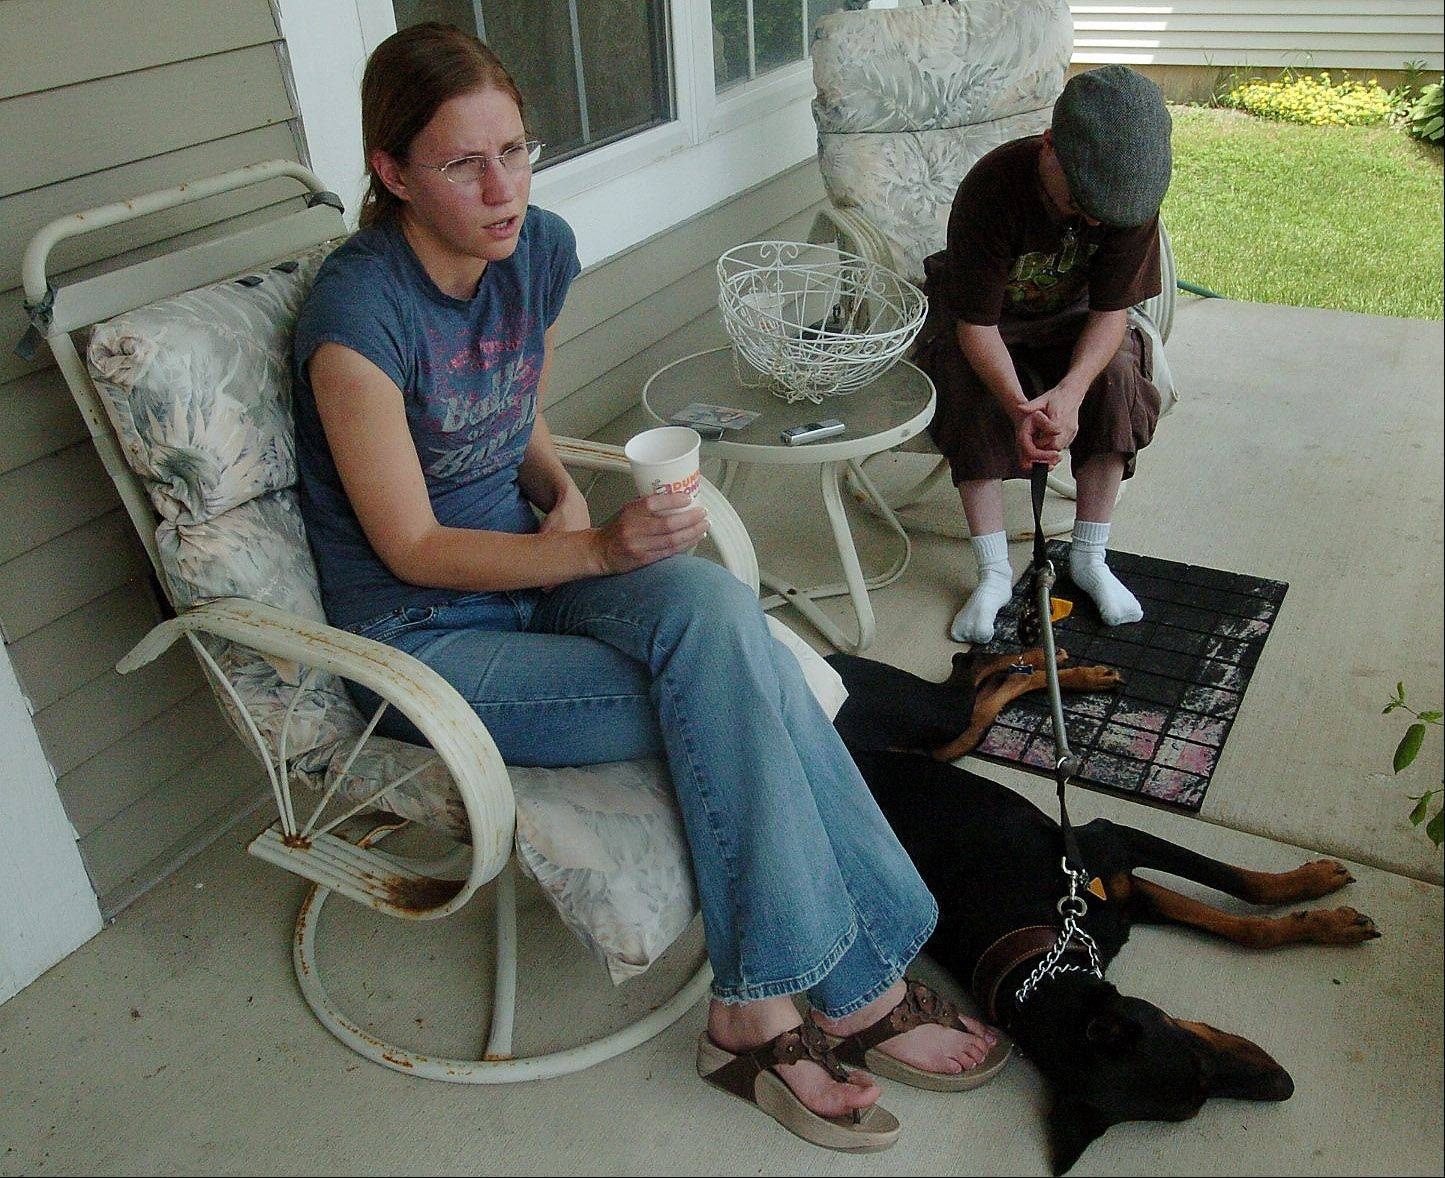 Taylor Stinchcomb's older sister, Mallorie Holler, talks Tuesday about Taylor on the front porch of their home in Gurnee, accompanied by a friend of the family, Casey Fallos, and Mallorie's Doberman, Renegade.